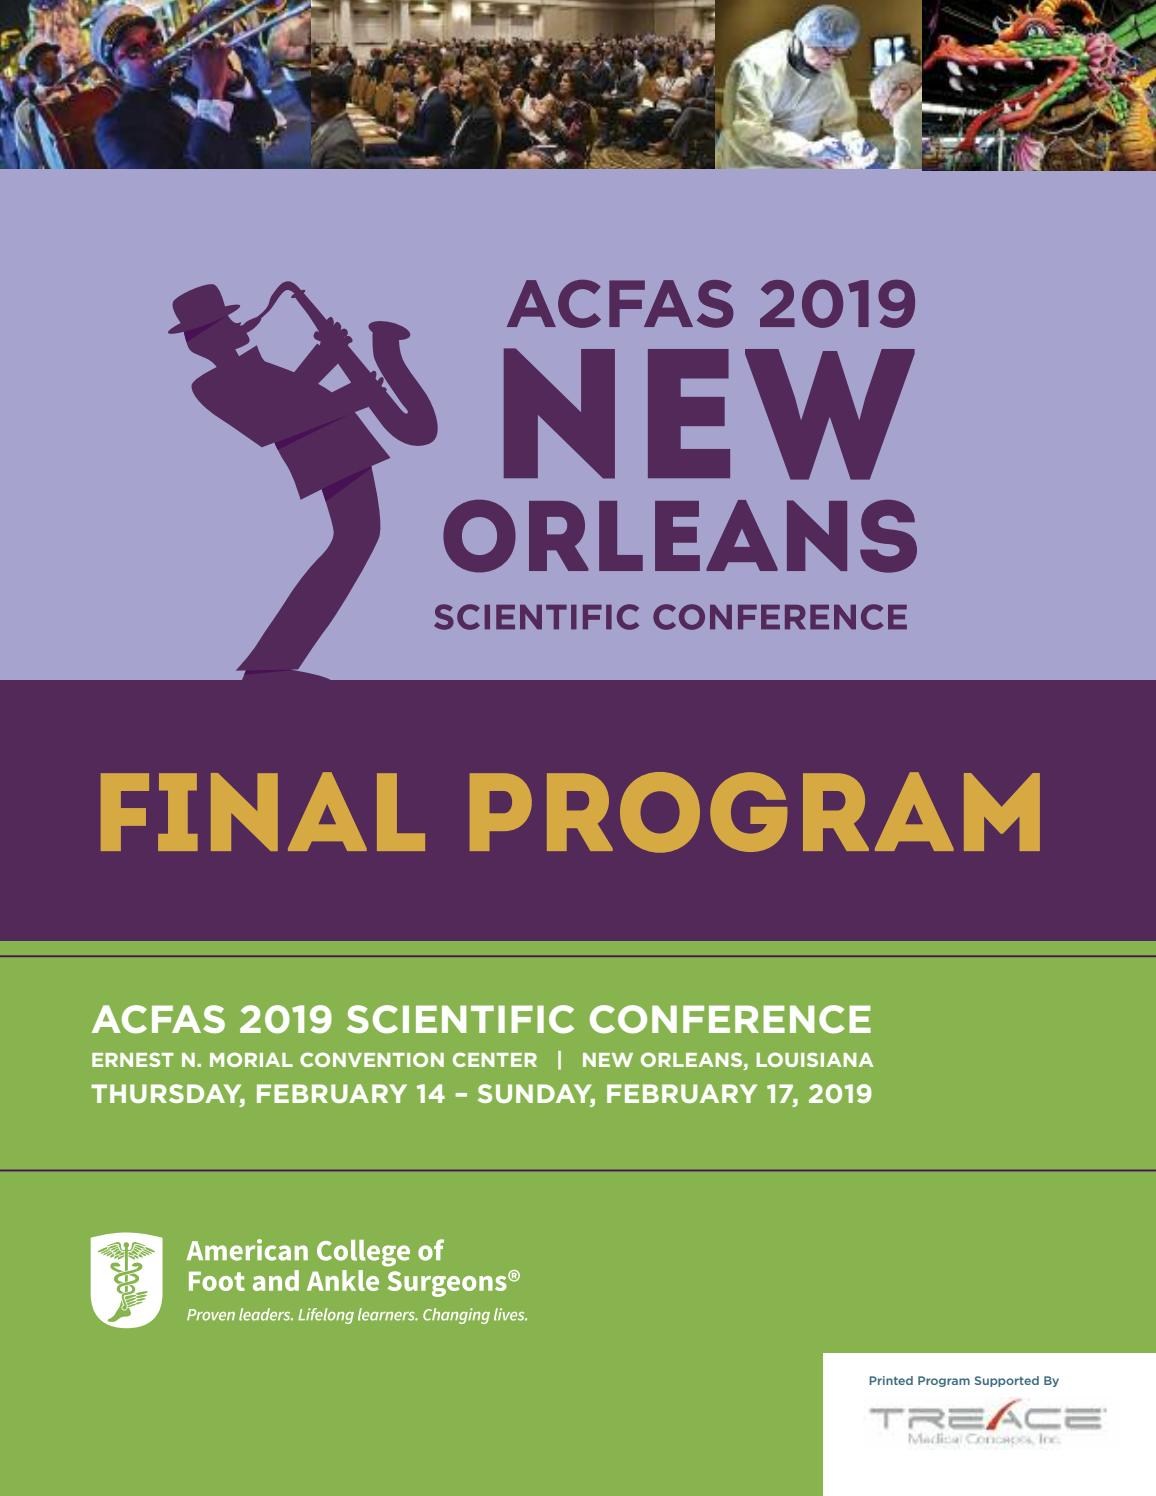 4ad361b1a83 ACFAS 2019 Annual Scientific Conference Program by ACFAS - issuu